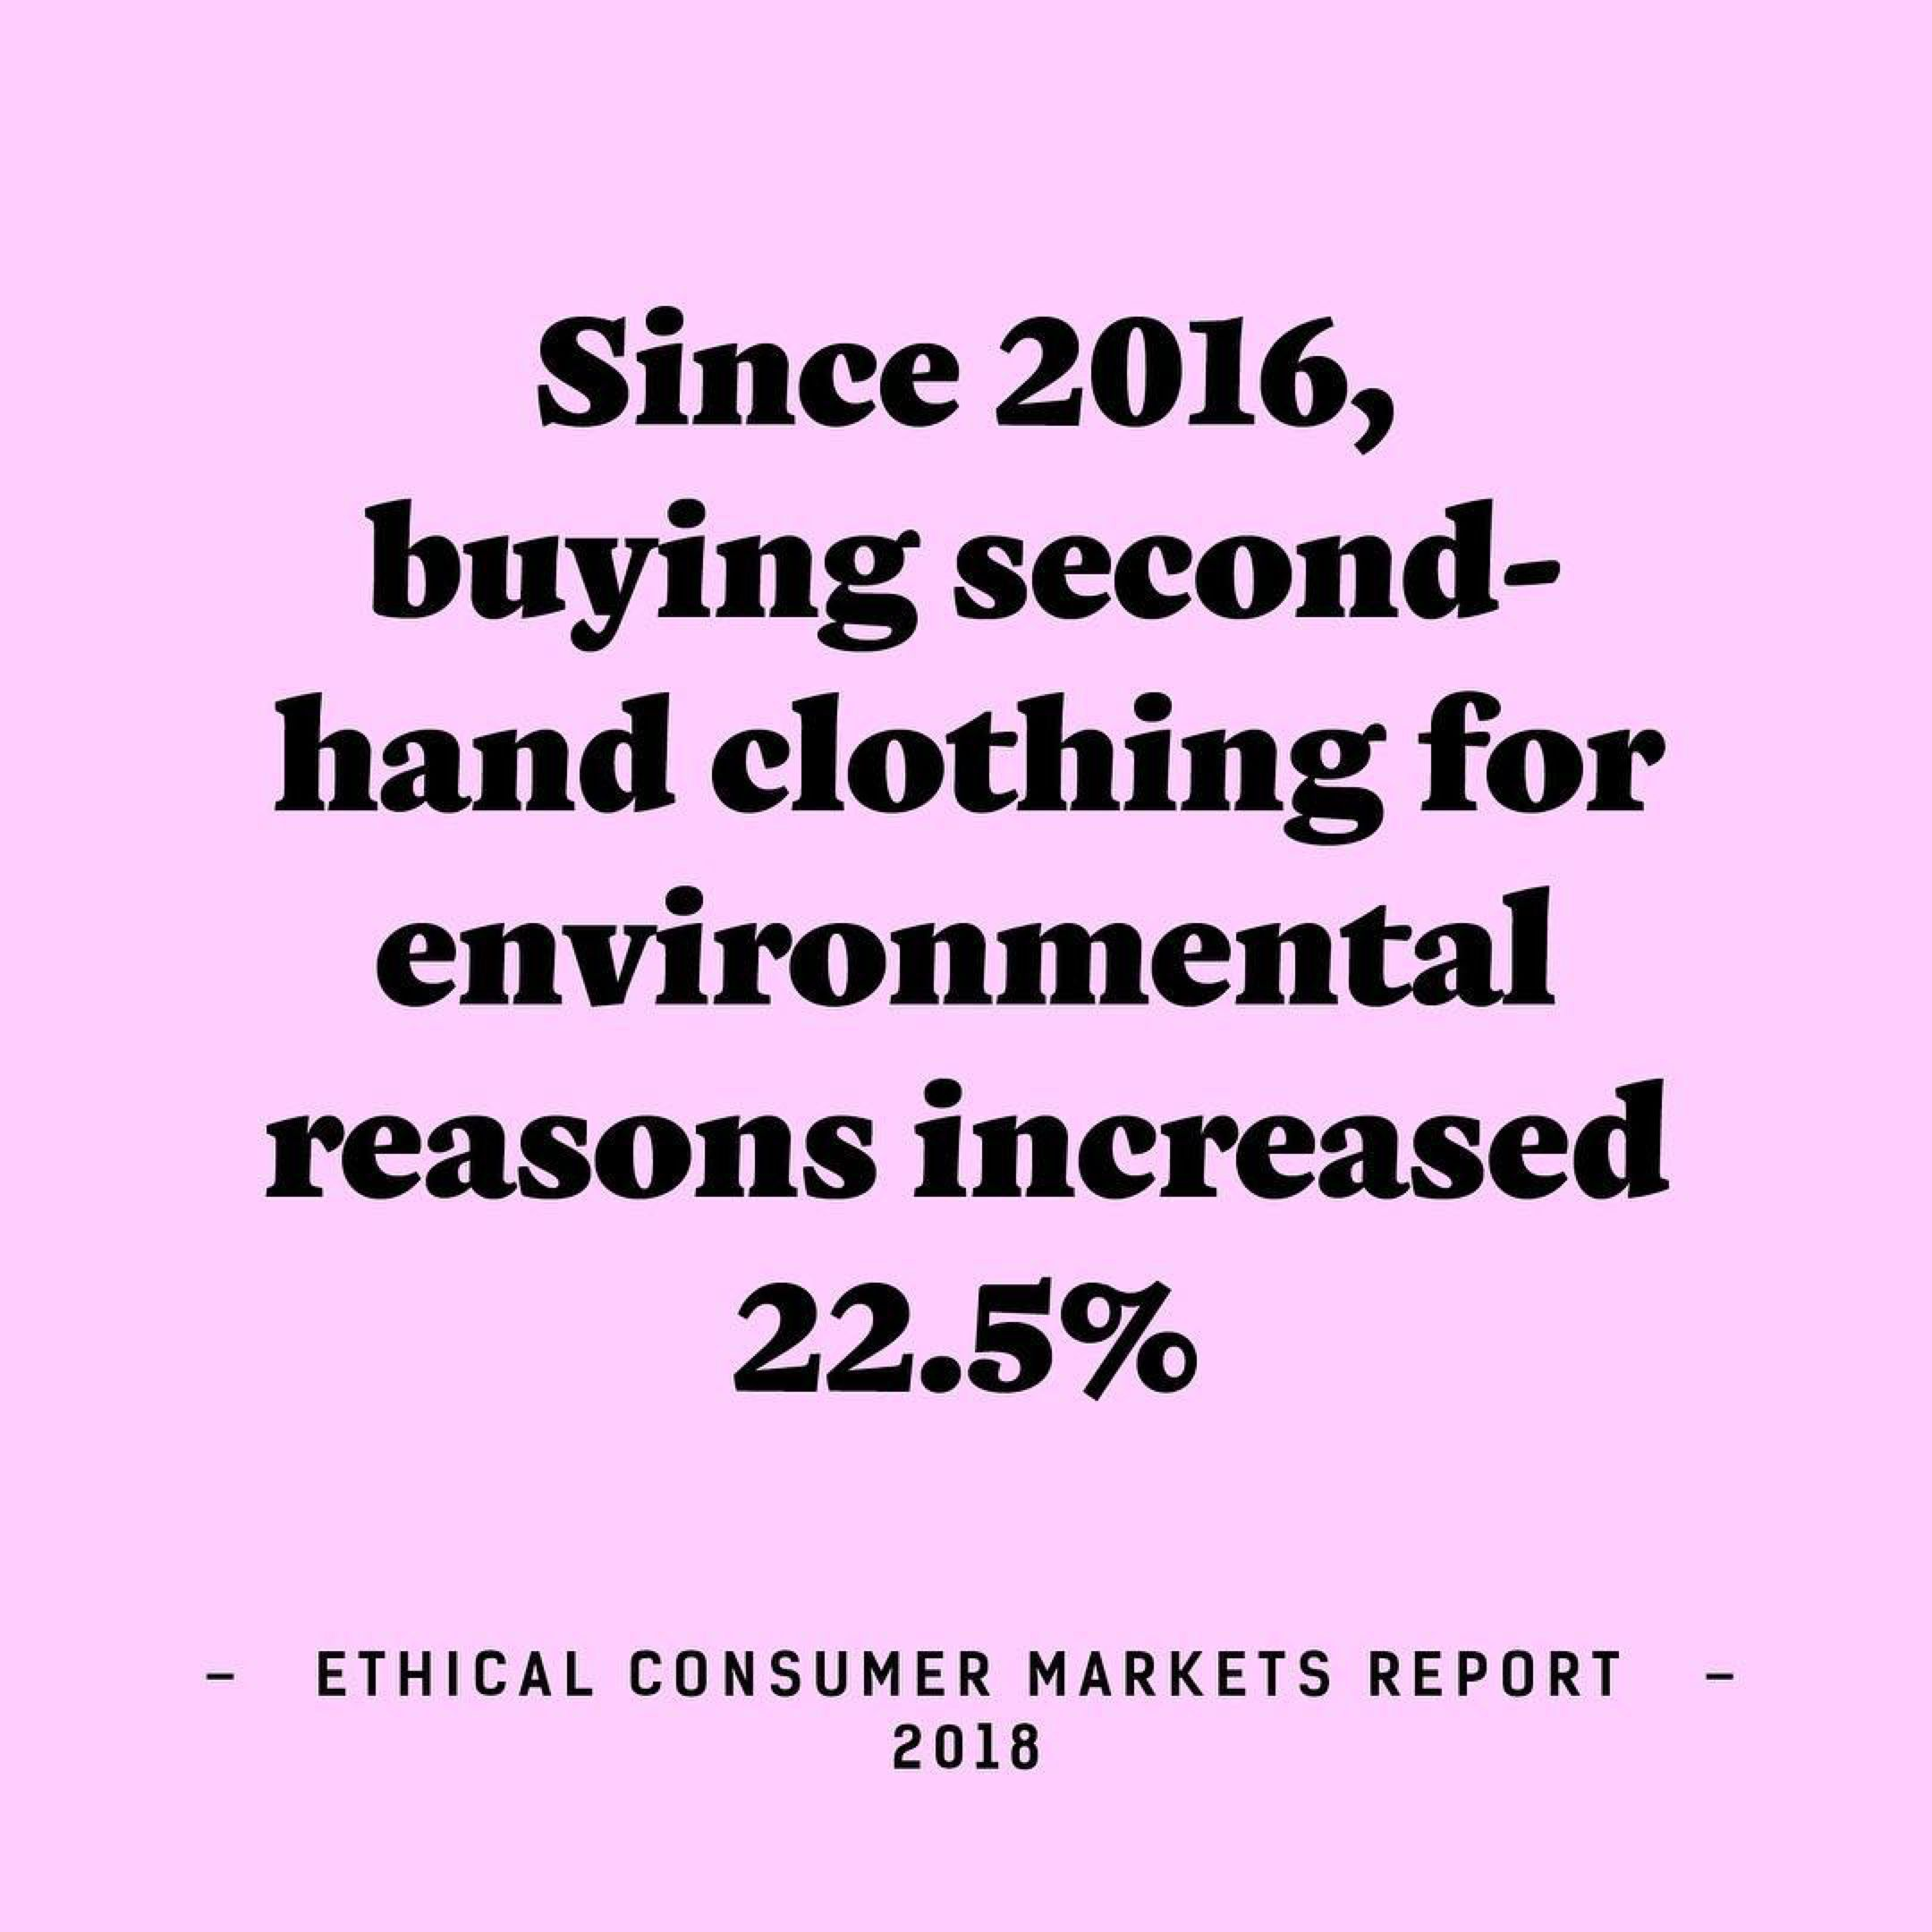 Pin By Angela Peck Wholistic Skin On Eco Fashion Ethical Sustainable Ethical Consumer Ethical Fashion Quotes Fashion Revolution